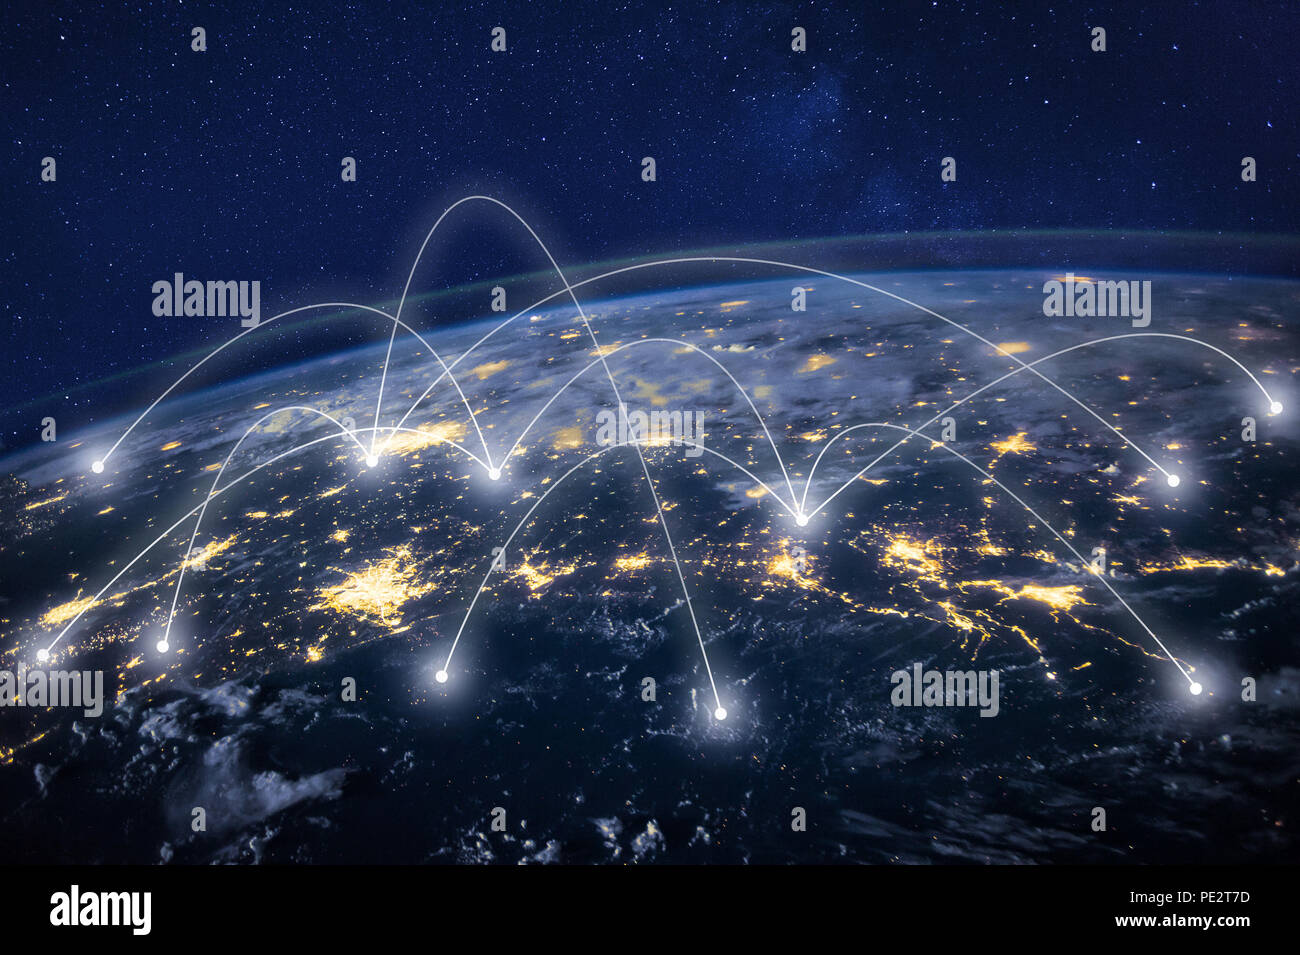 global network concept, information technology and telecommunication, planet Earth from space, business communication worldwide, original image furnis - Stock Image